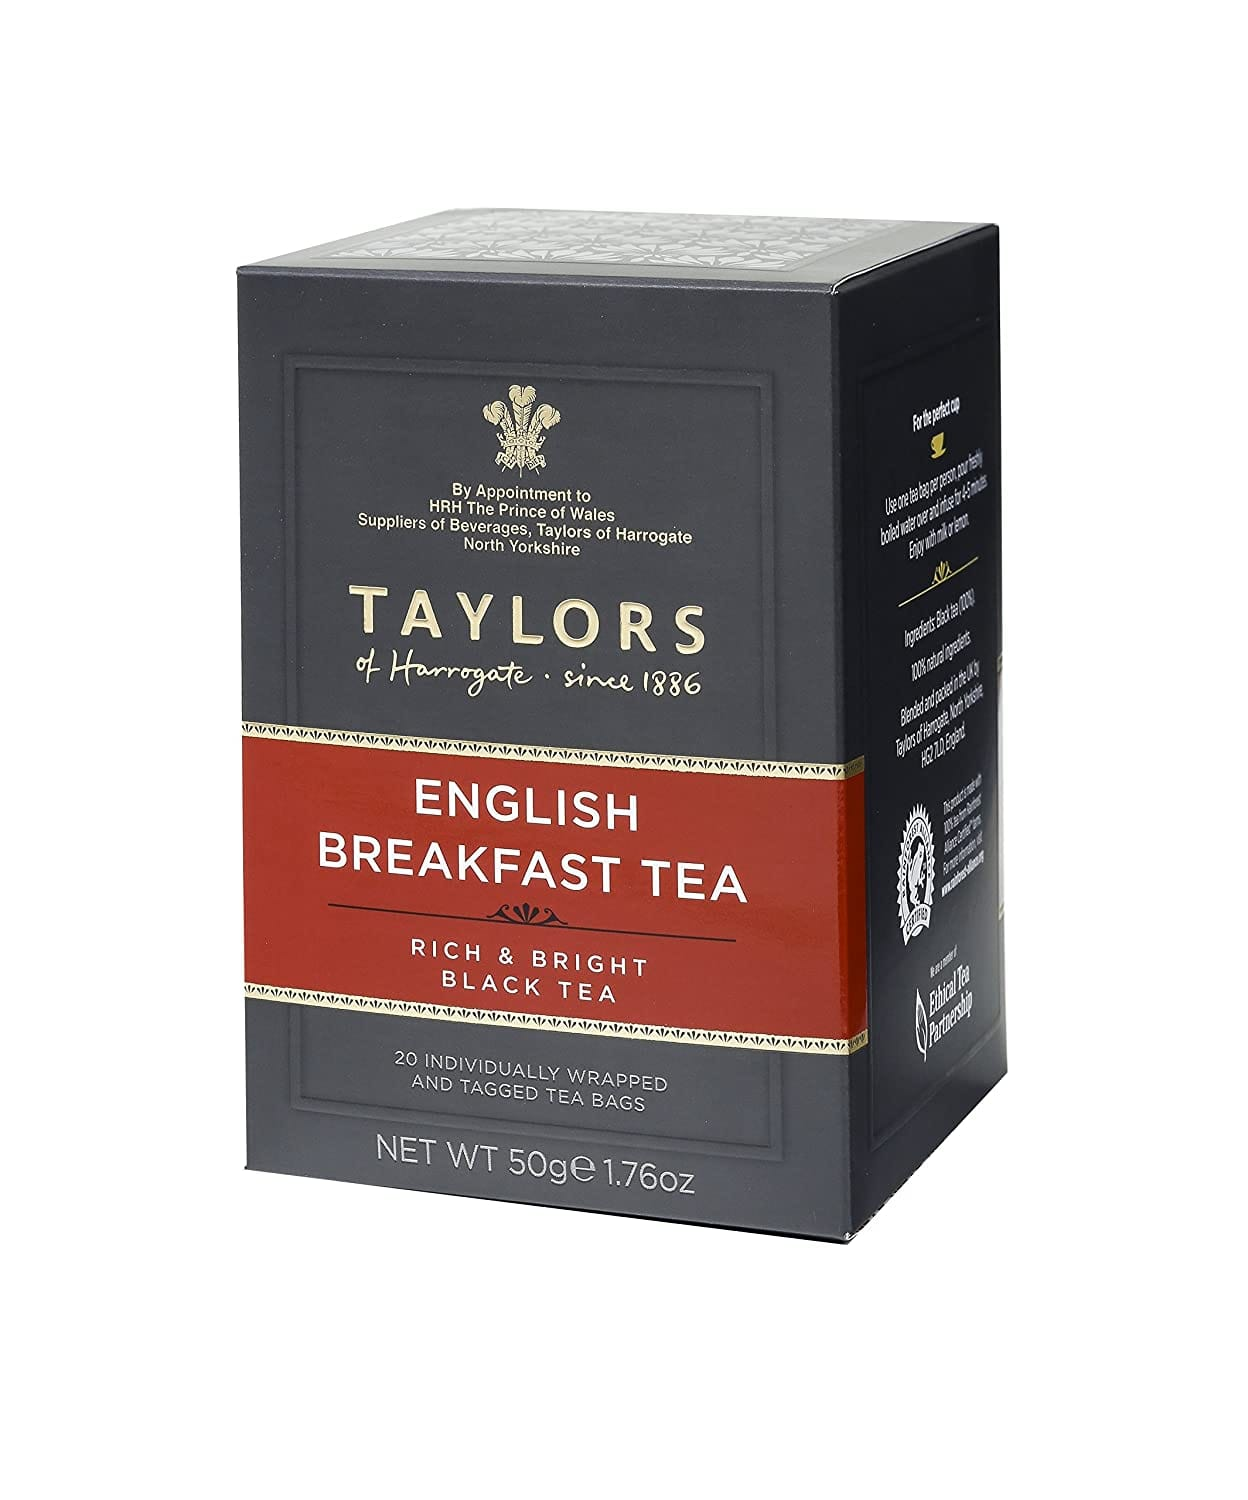 Taylors of Harrogate English Breakfast, 20 Count (Pack of 6) $13.40